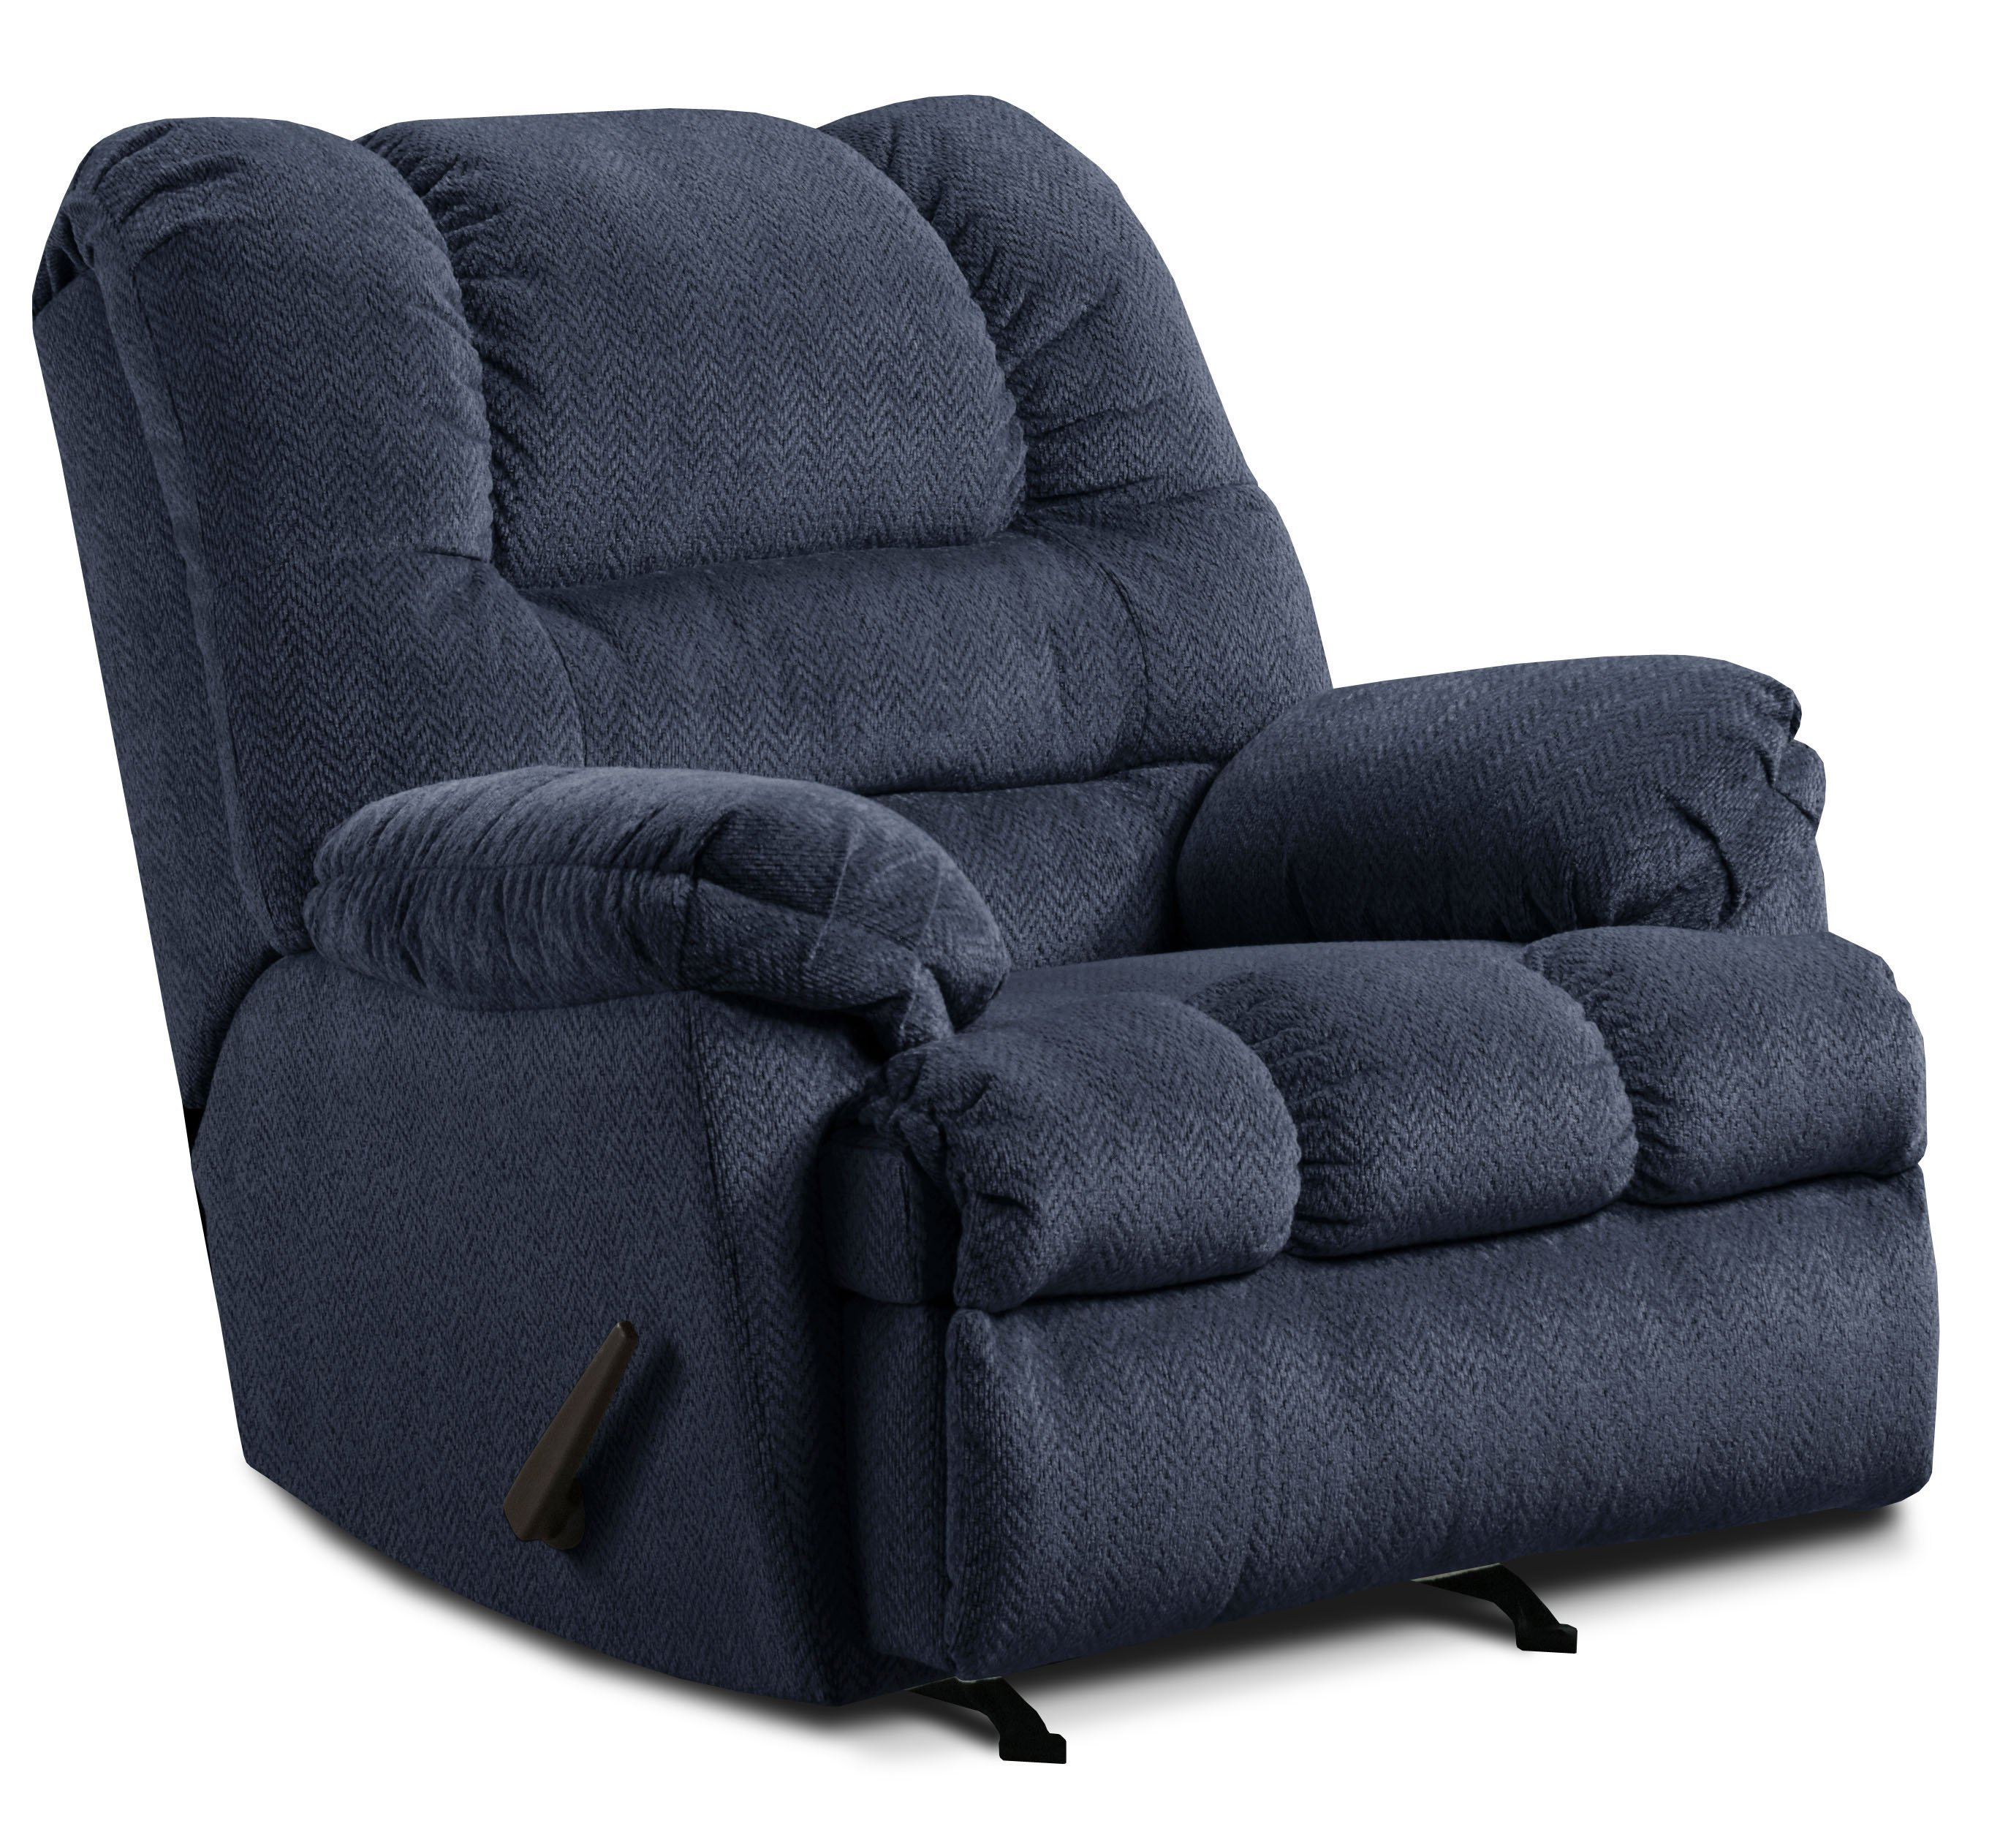 Furniture Clearance Center Recliners